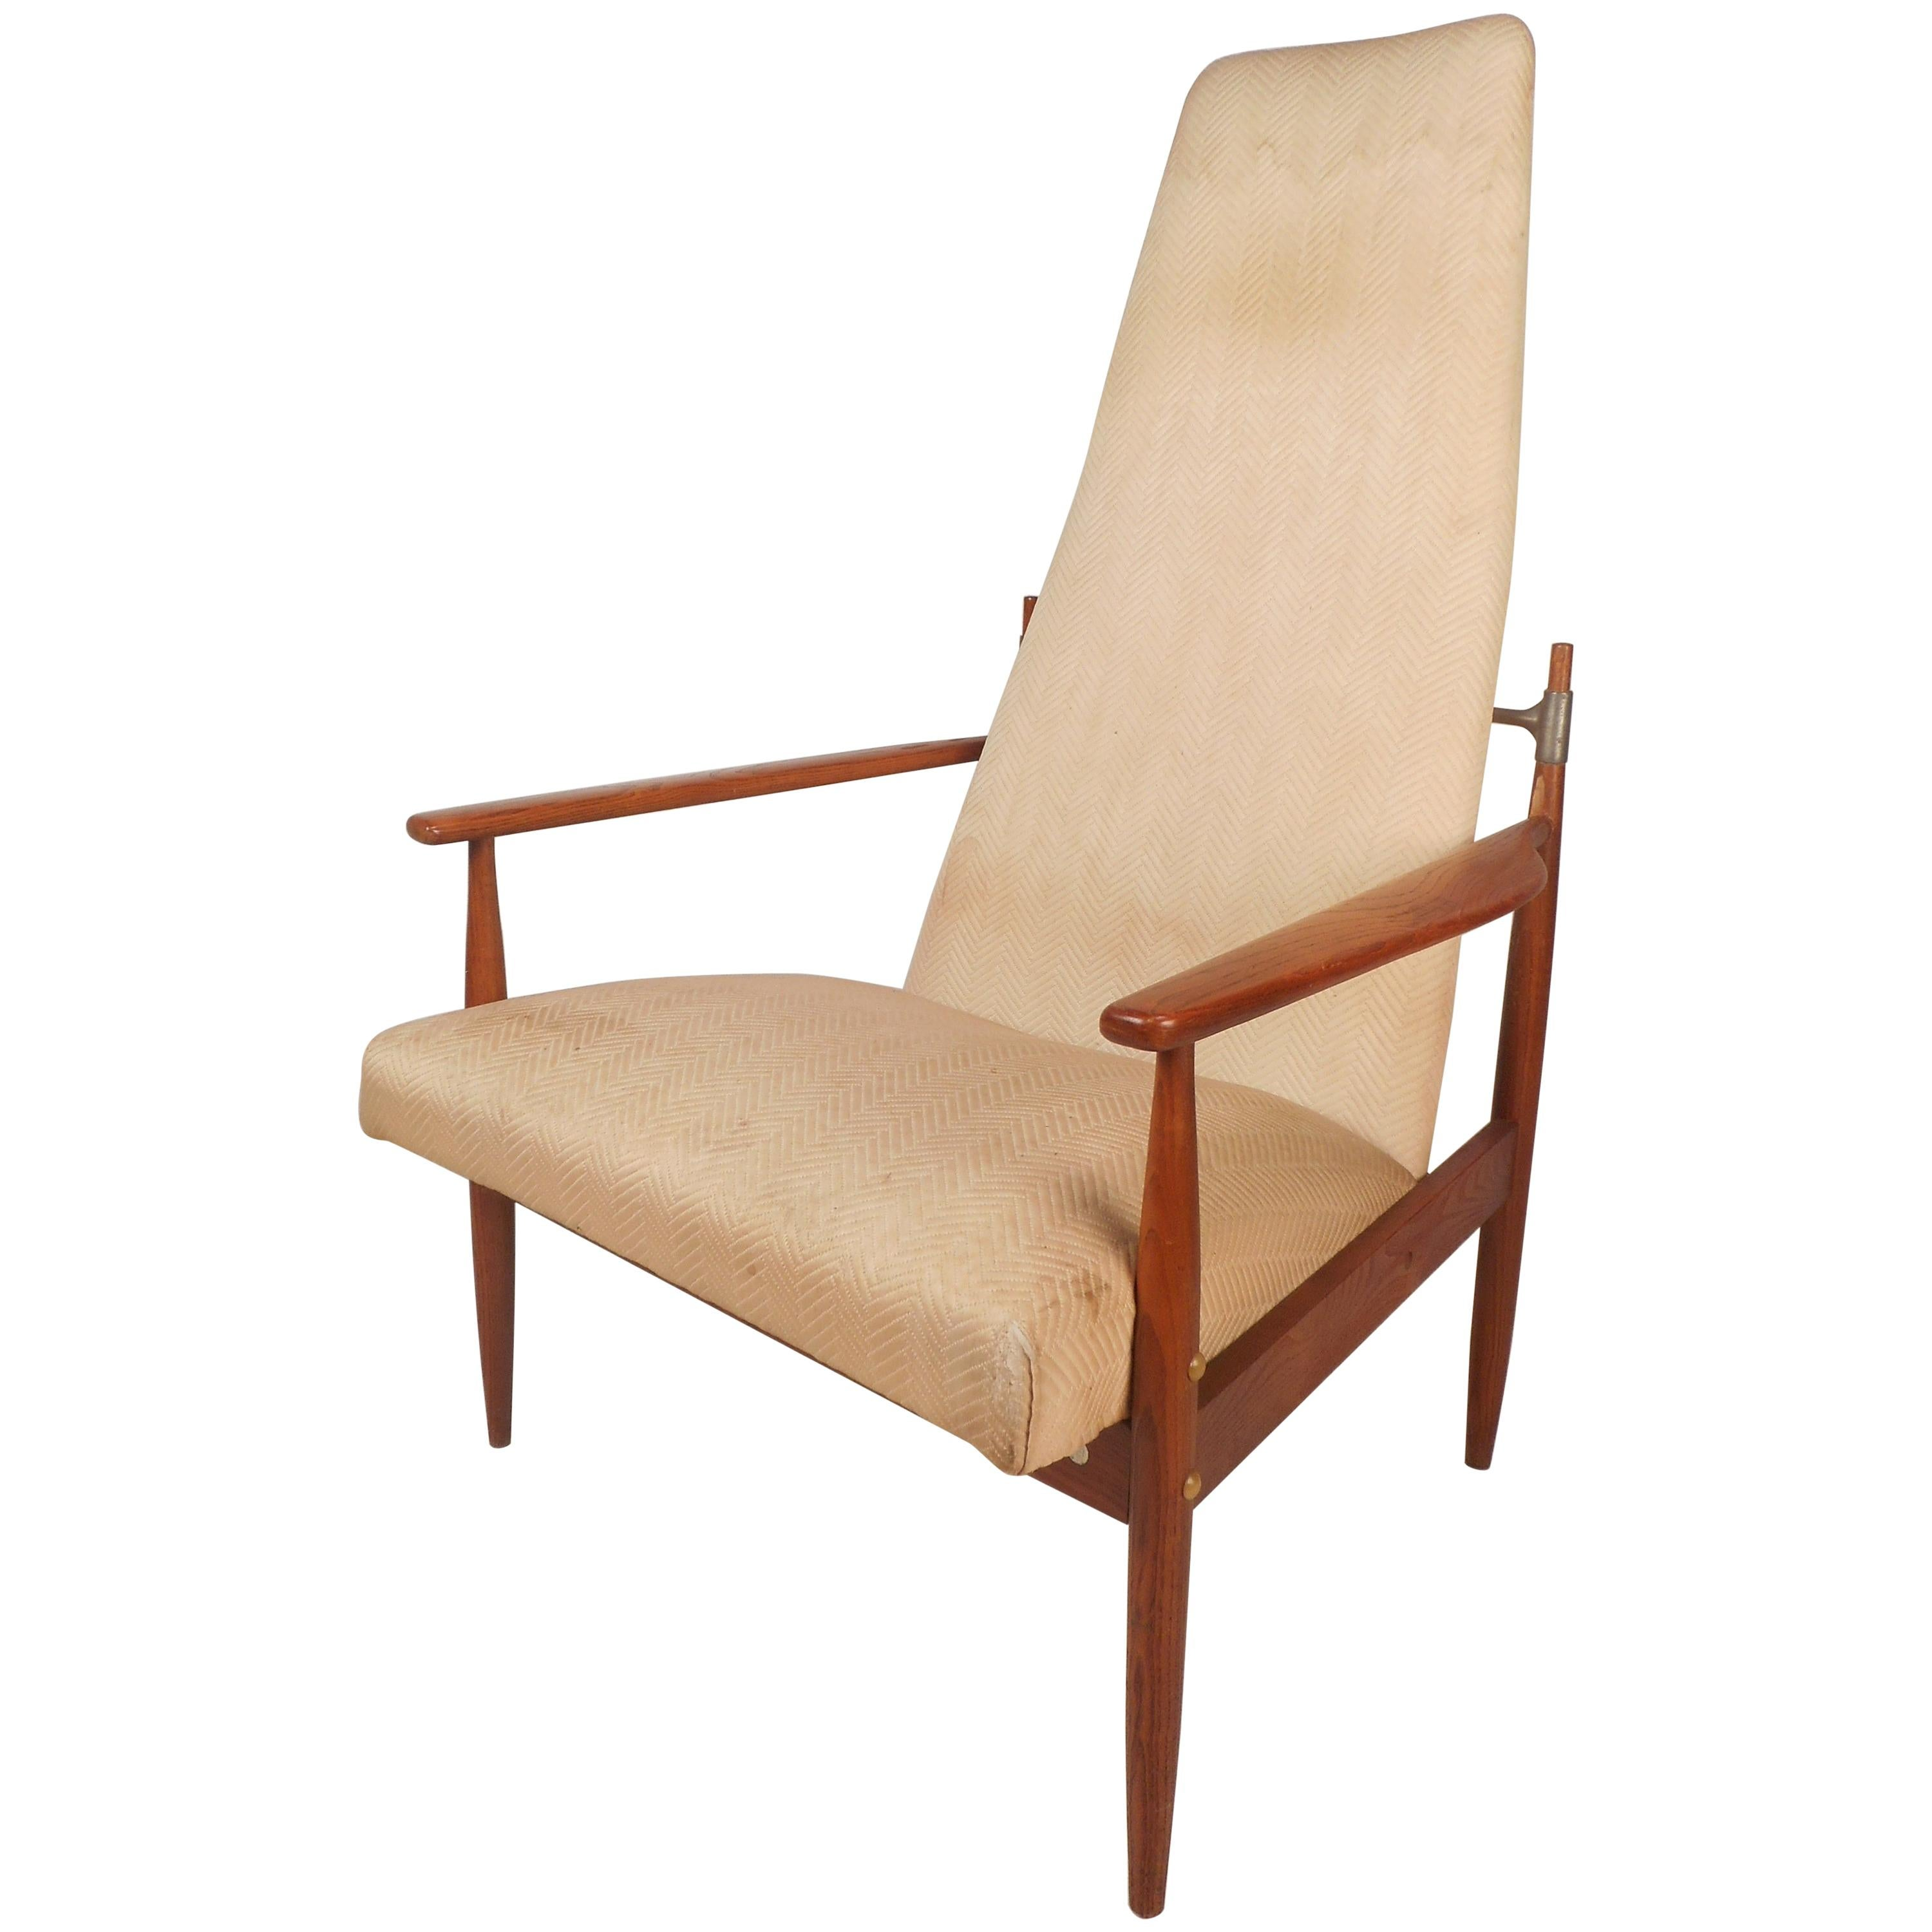 Generous Mid Century Danish Modern Walnut Design Lounge Chair American Slope Armchair Chairs Antiques